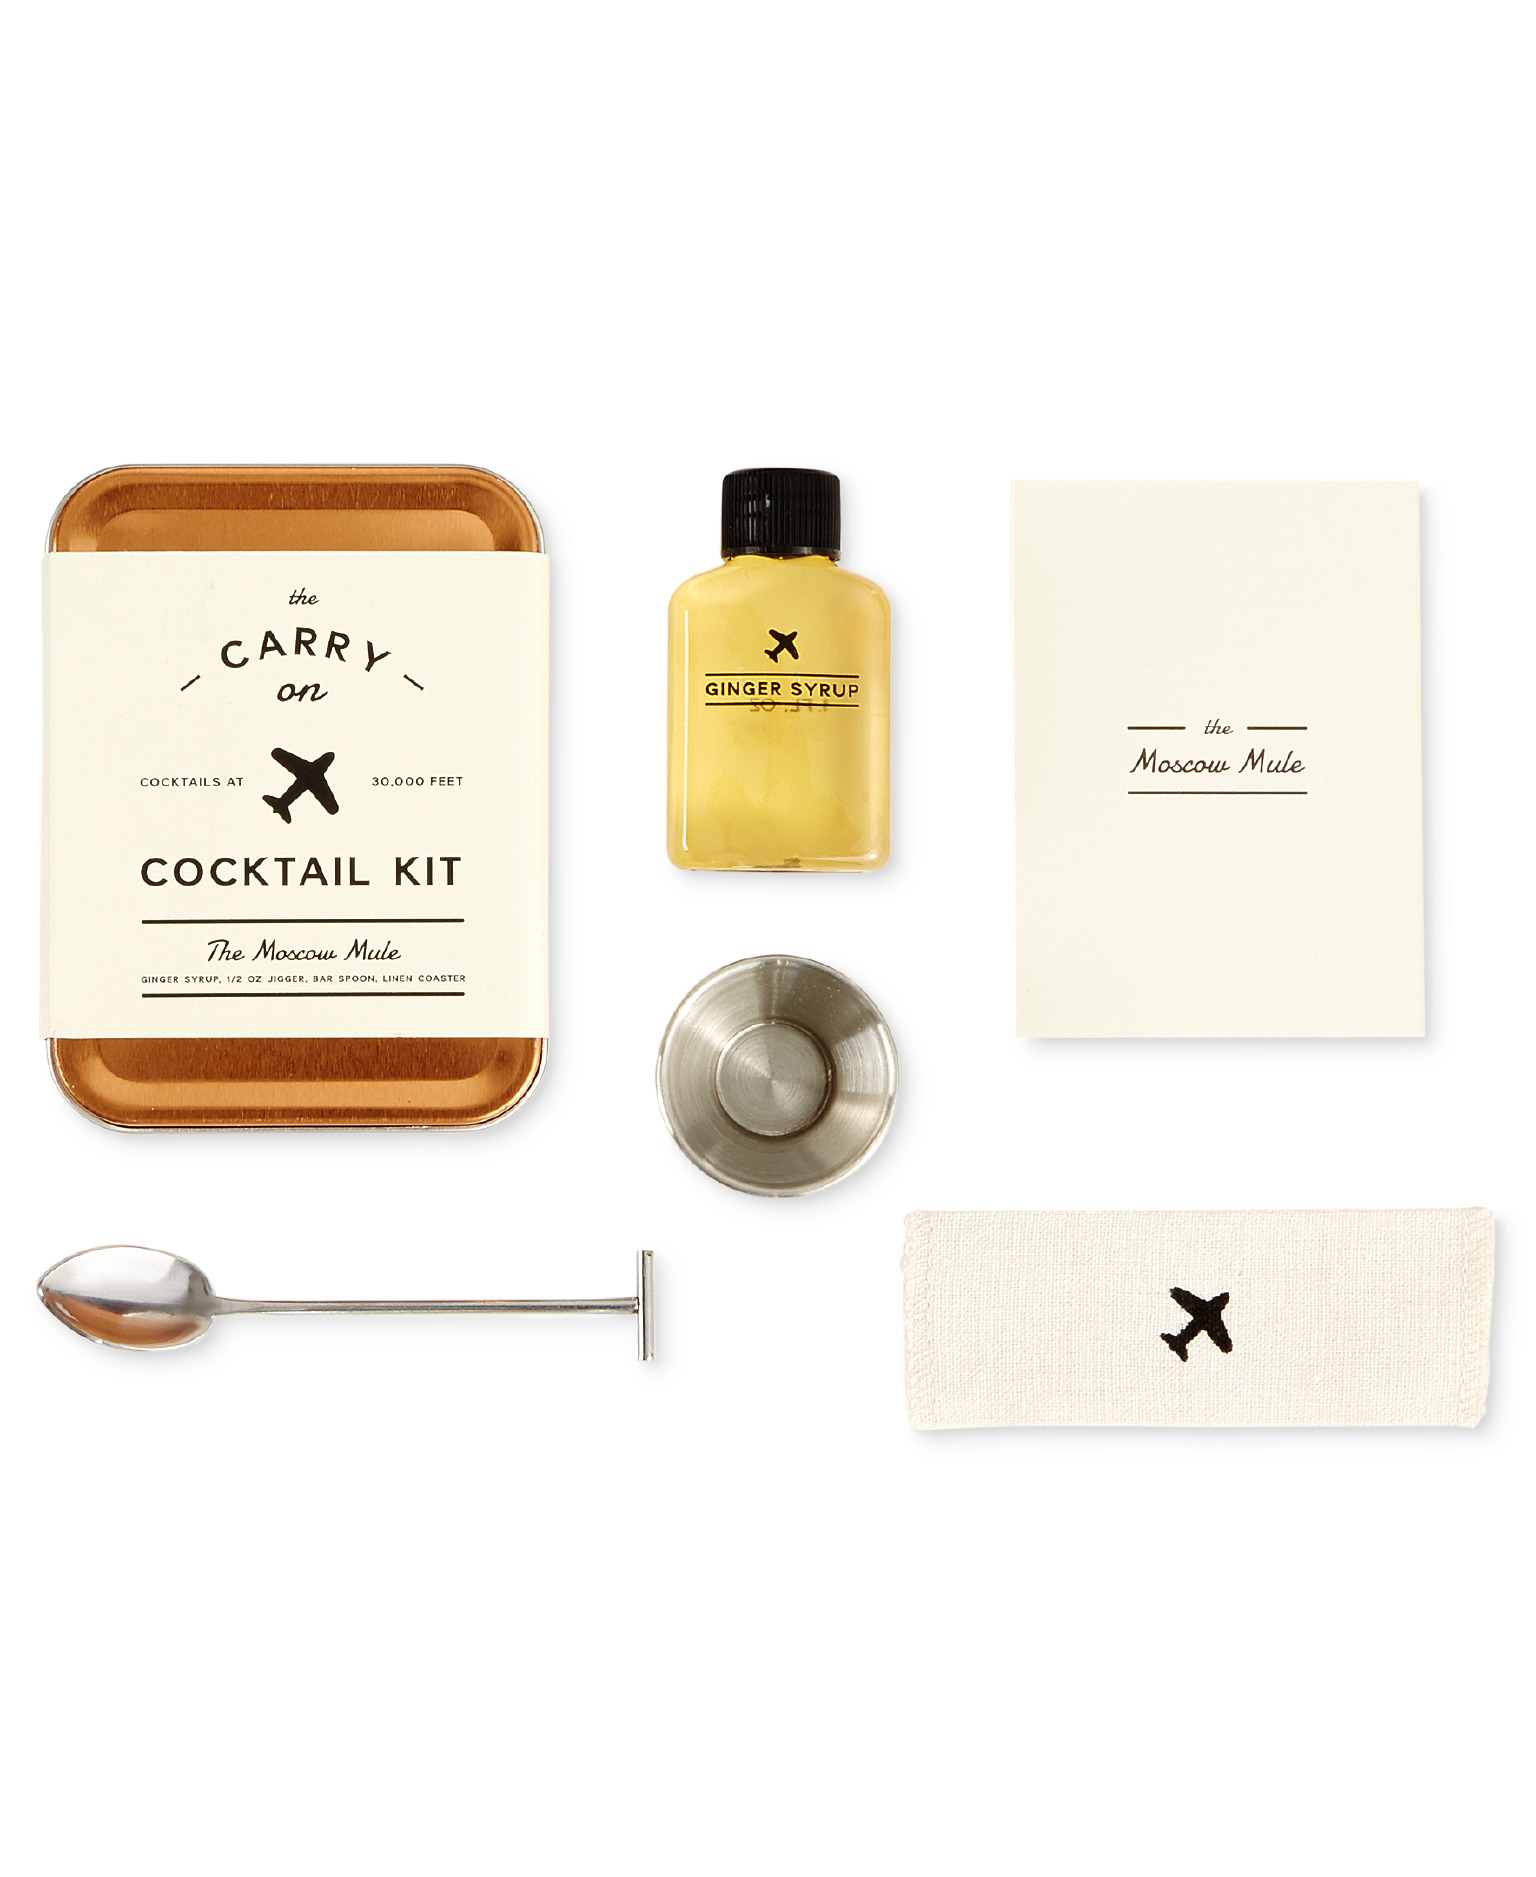 W&amp;amp;P Design Carry On Cocktail Kit from Macy's // Price:{&amp;nbsp;} $24 // (Macy's)<p></p>